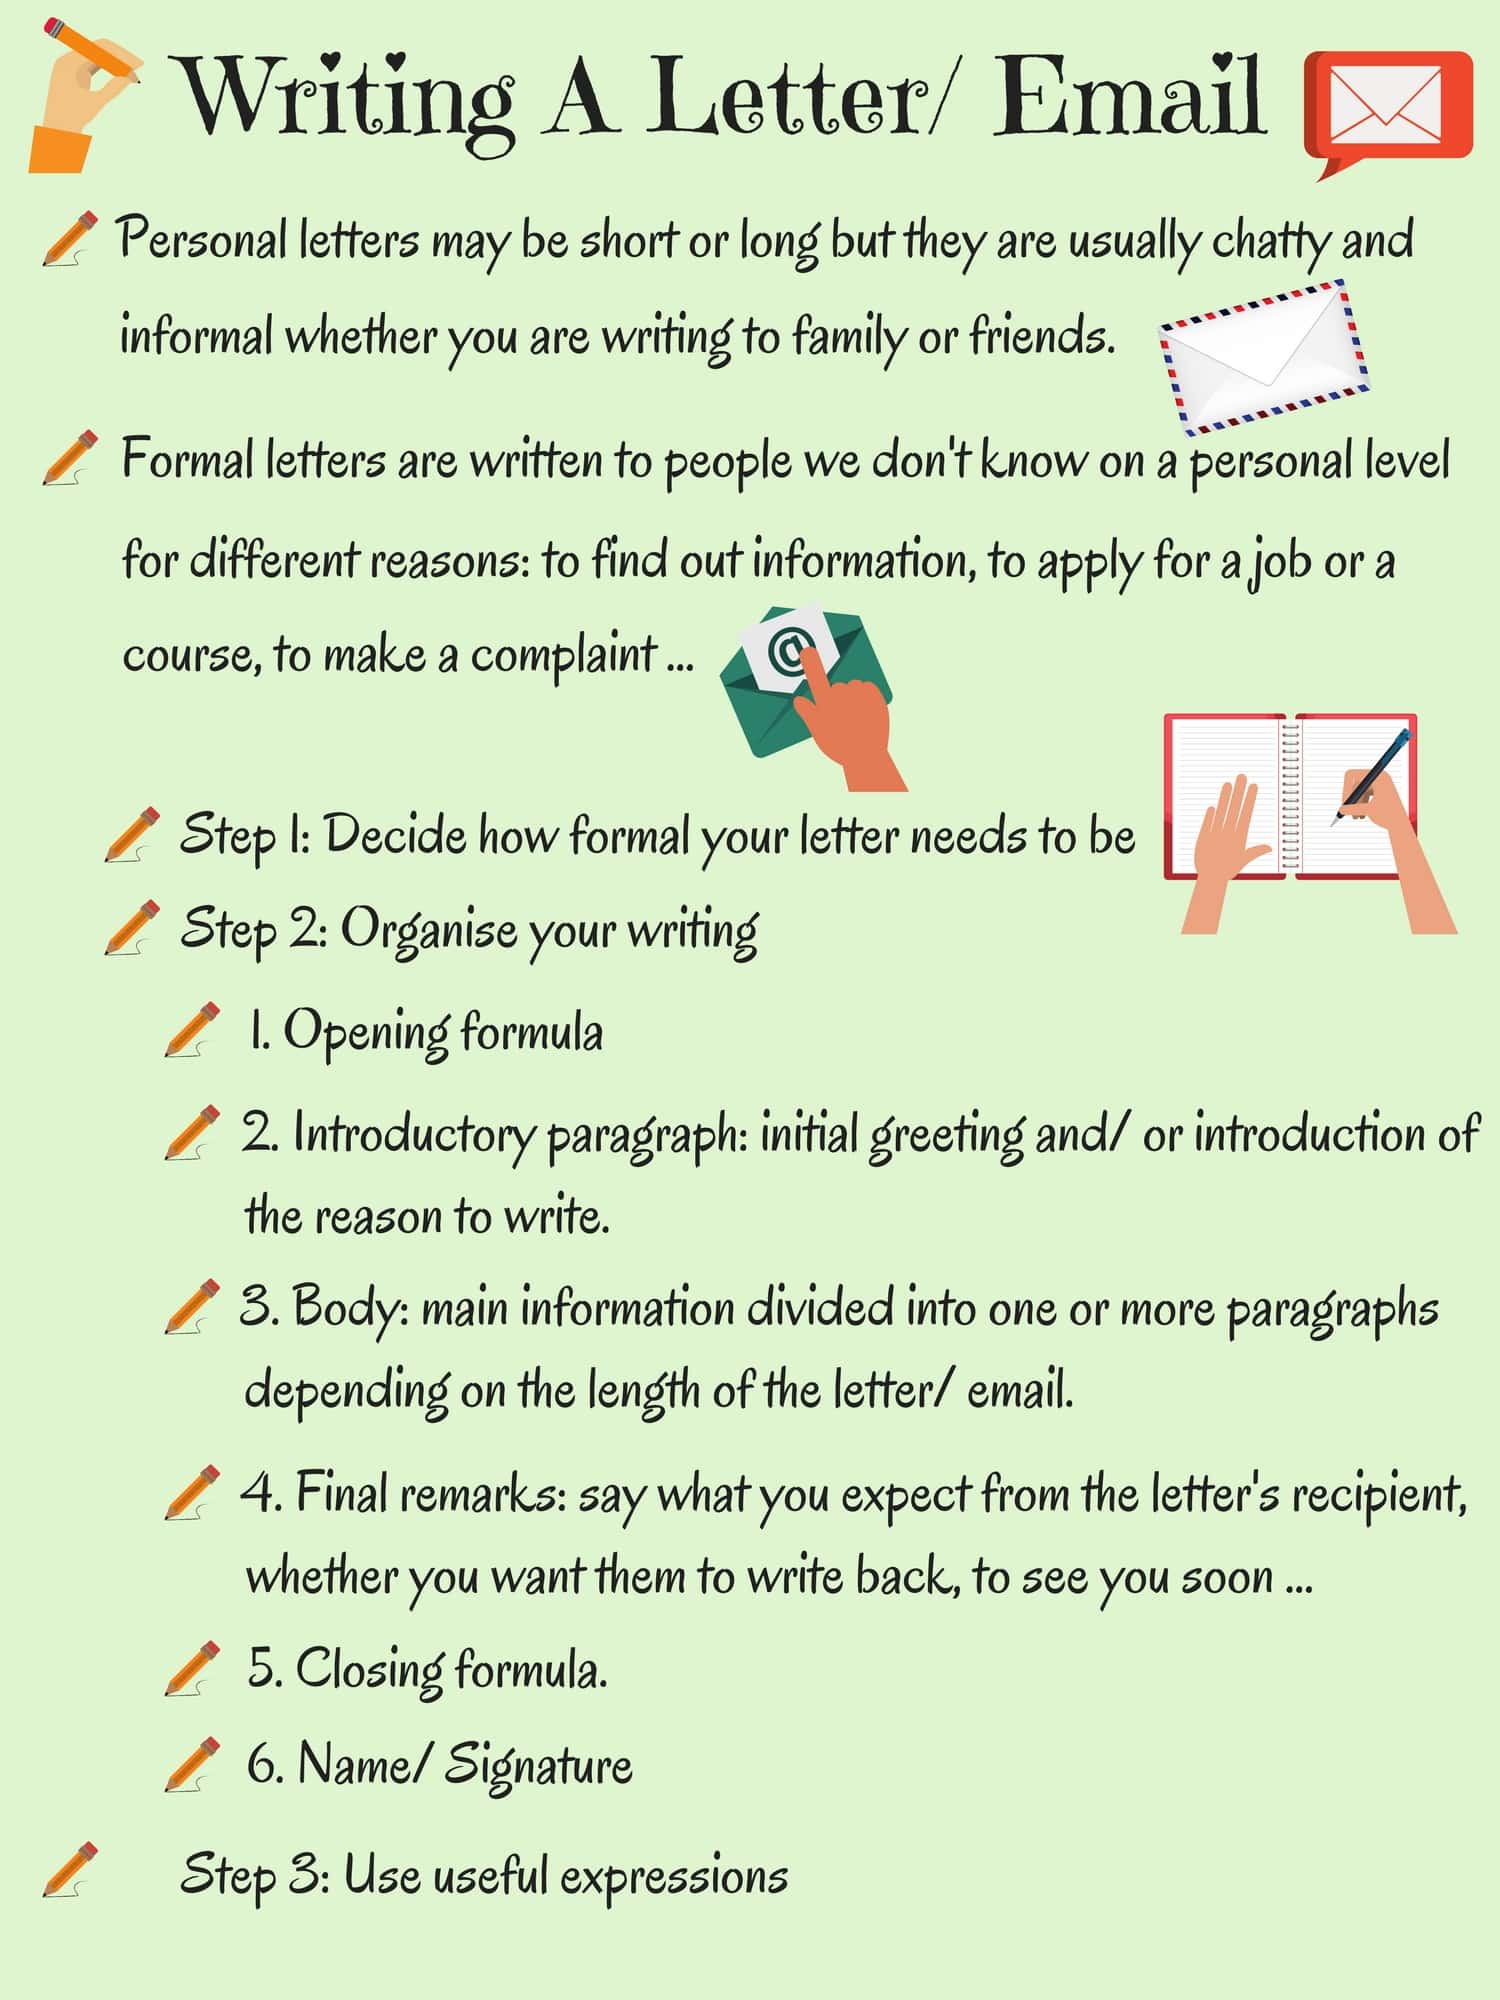 How to Write a Letter or an Essay in English | Useful Tips 5